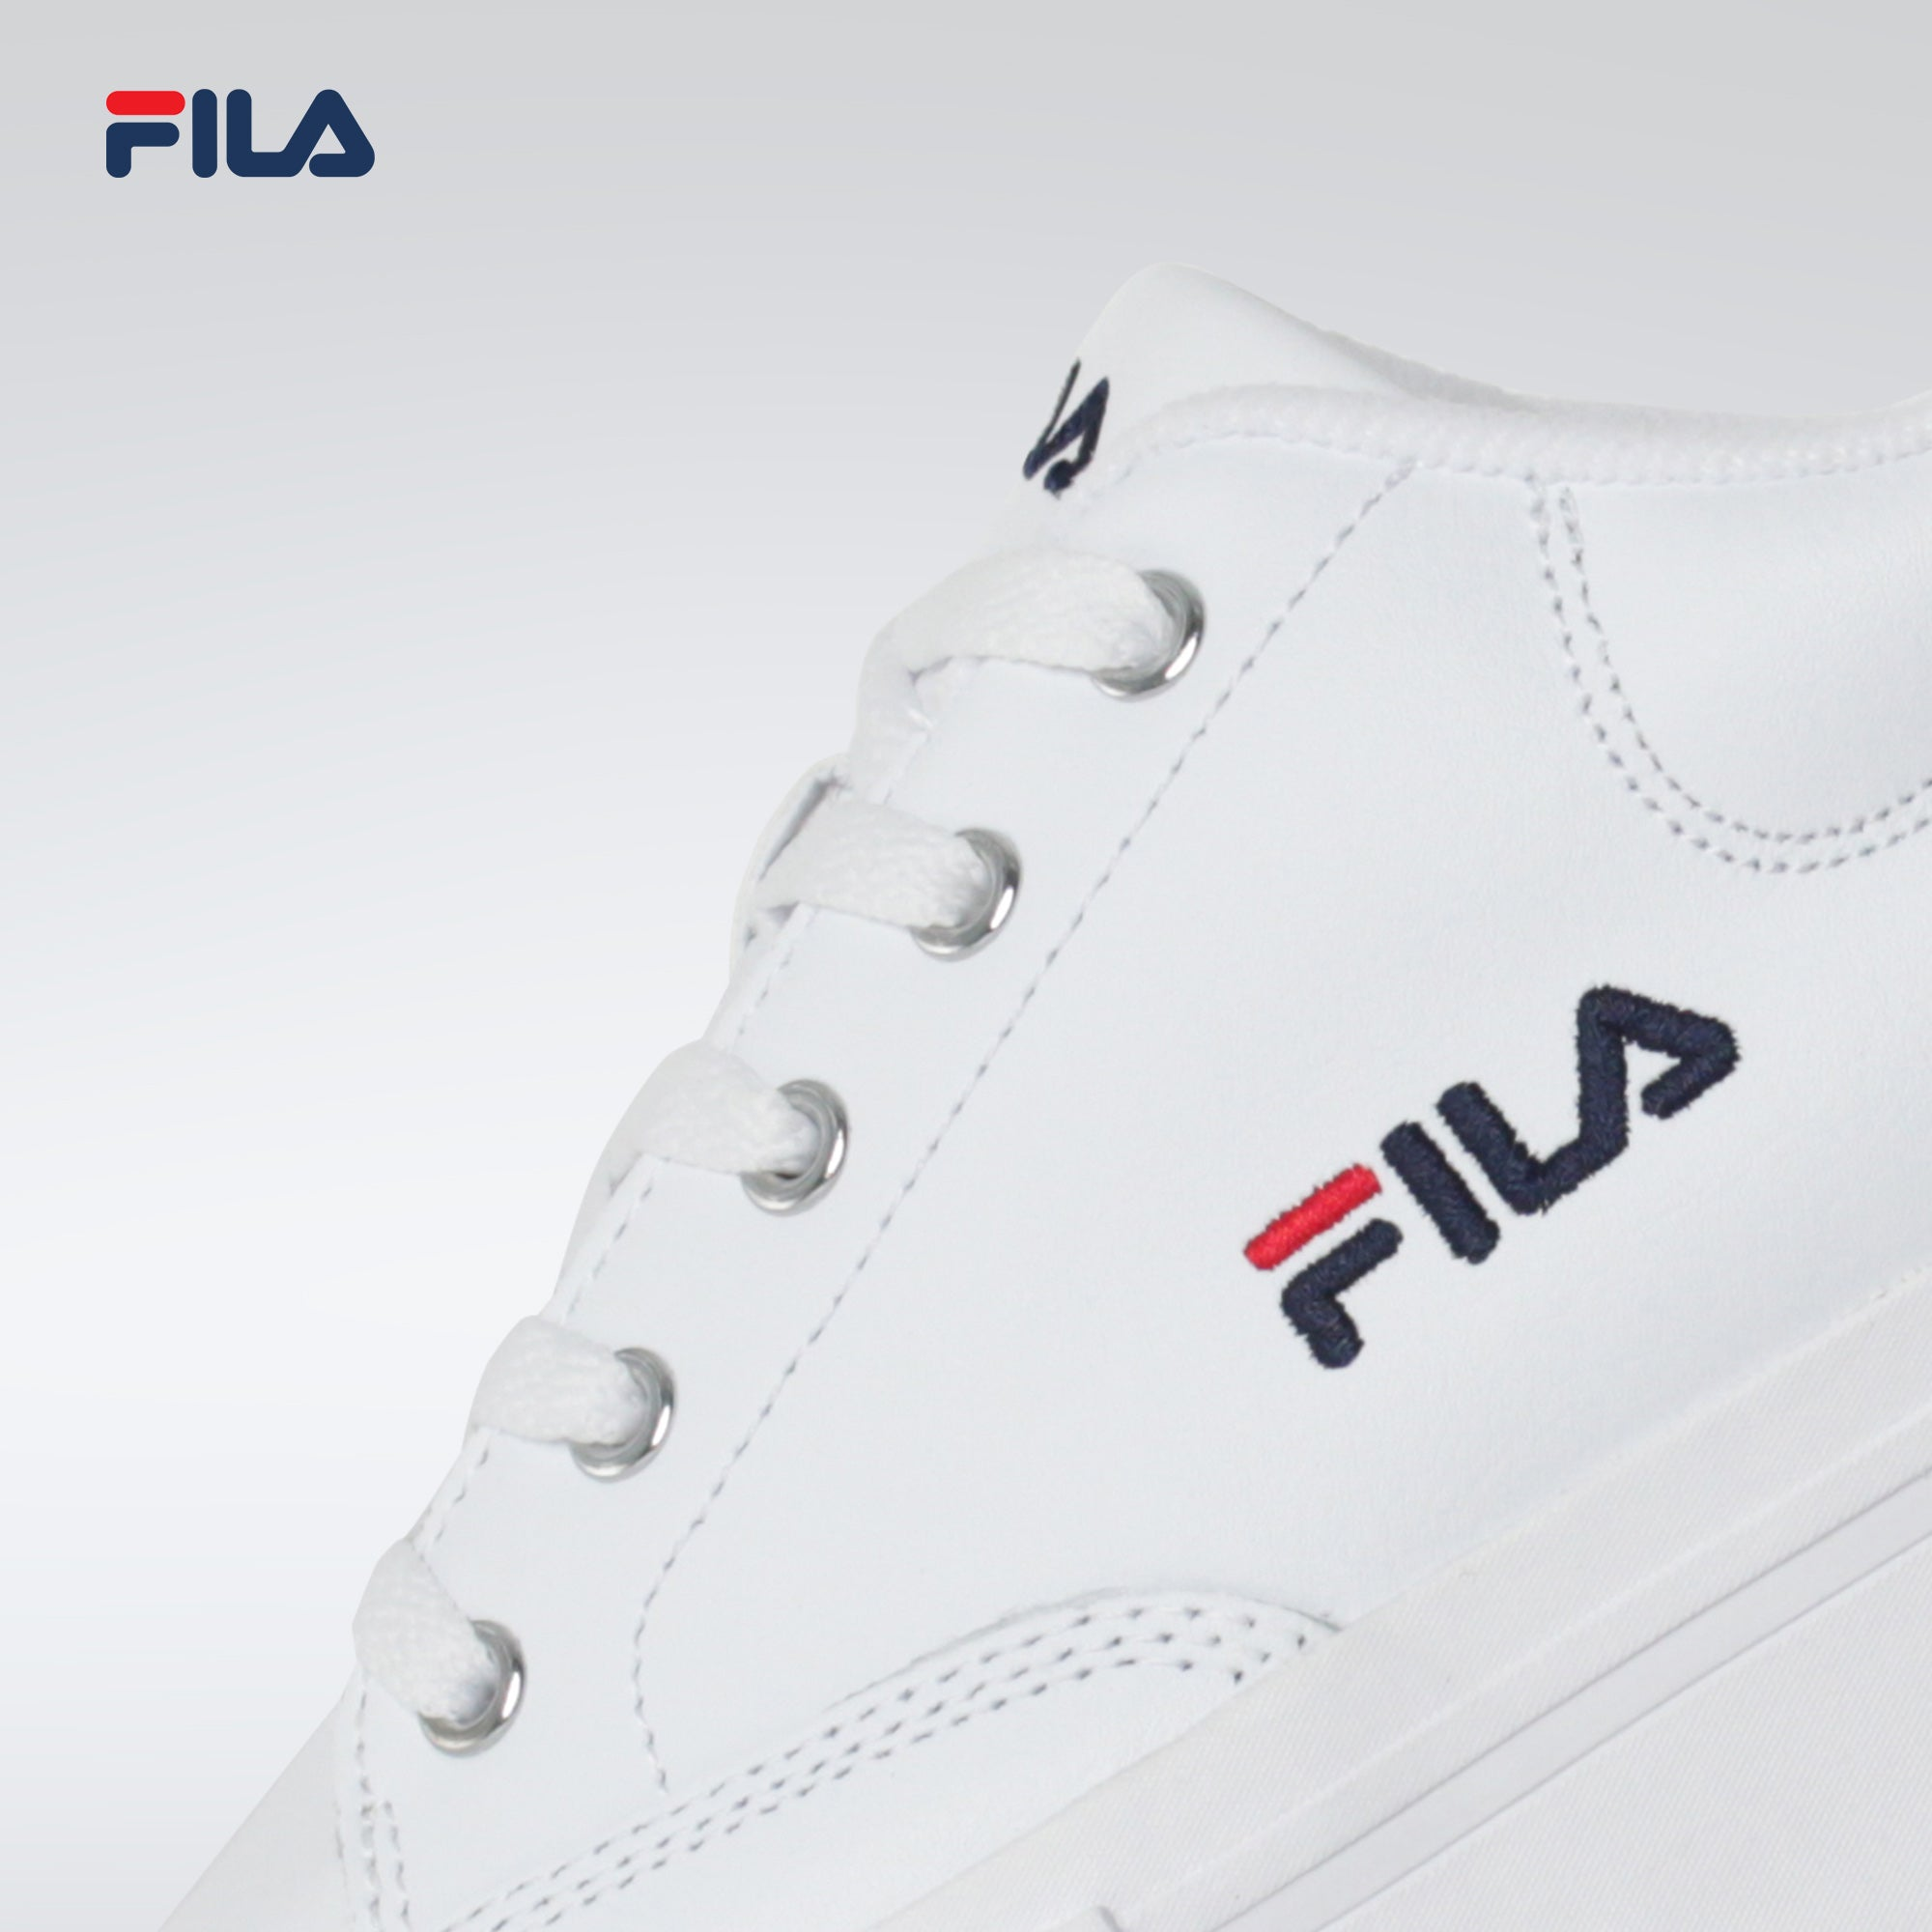 Fila Women's Lifestyle Sandblast Low Sneakers (WHT/FNAVY/FRED)